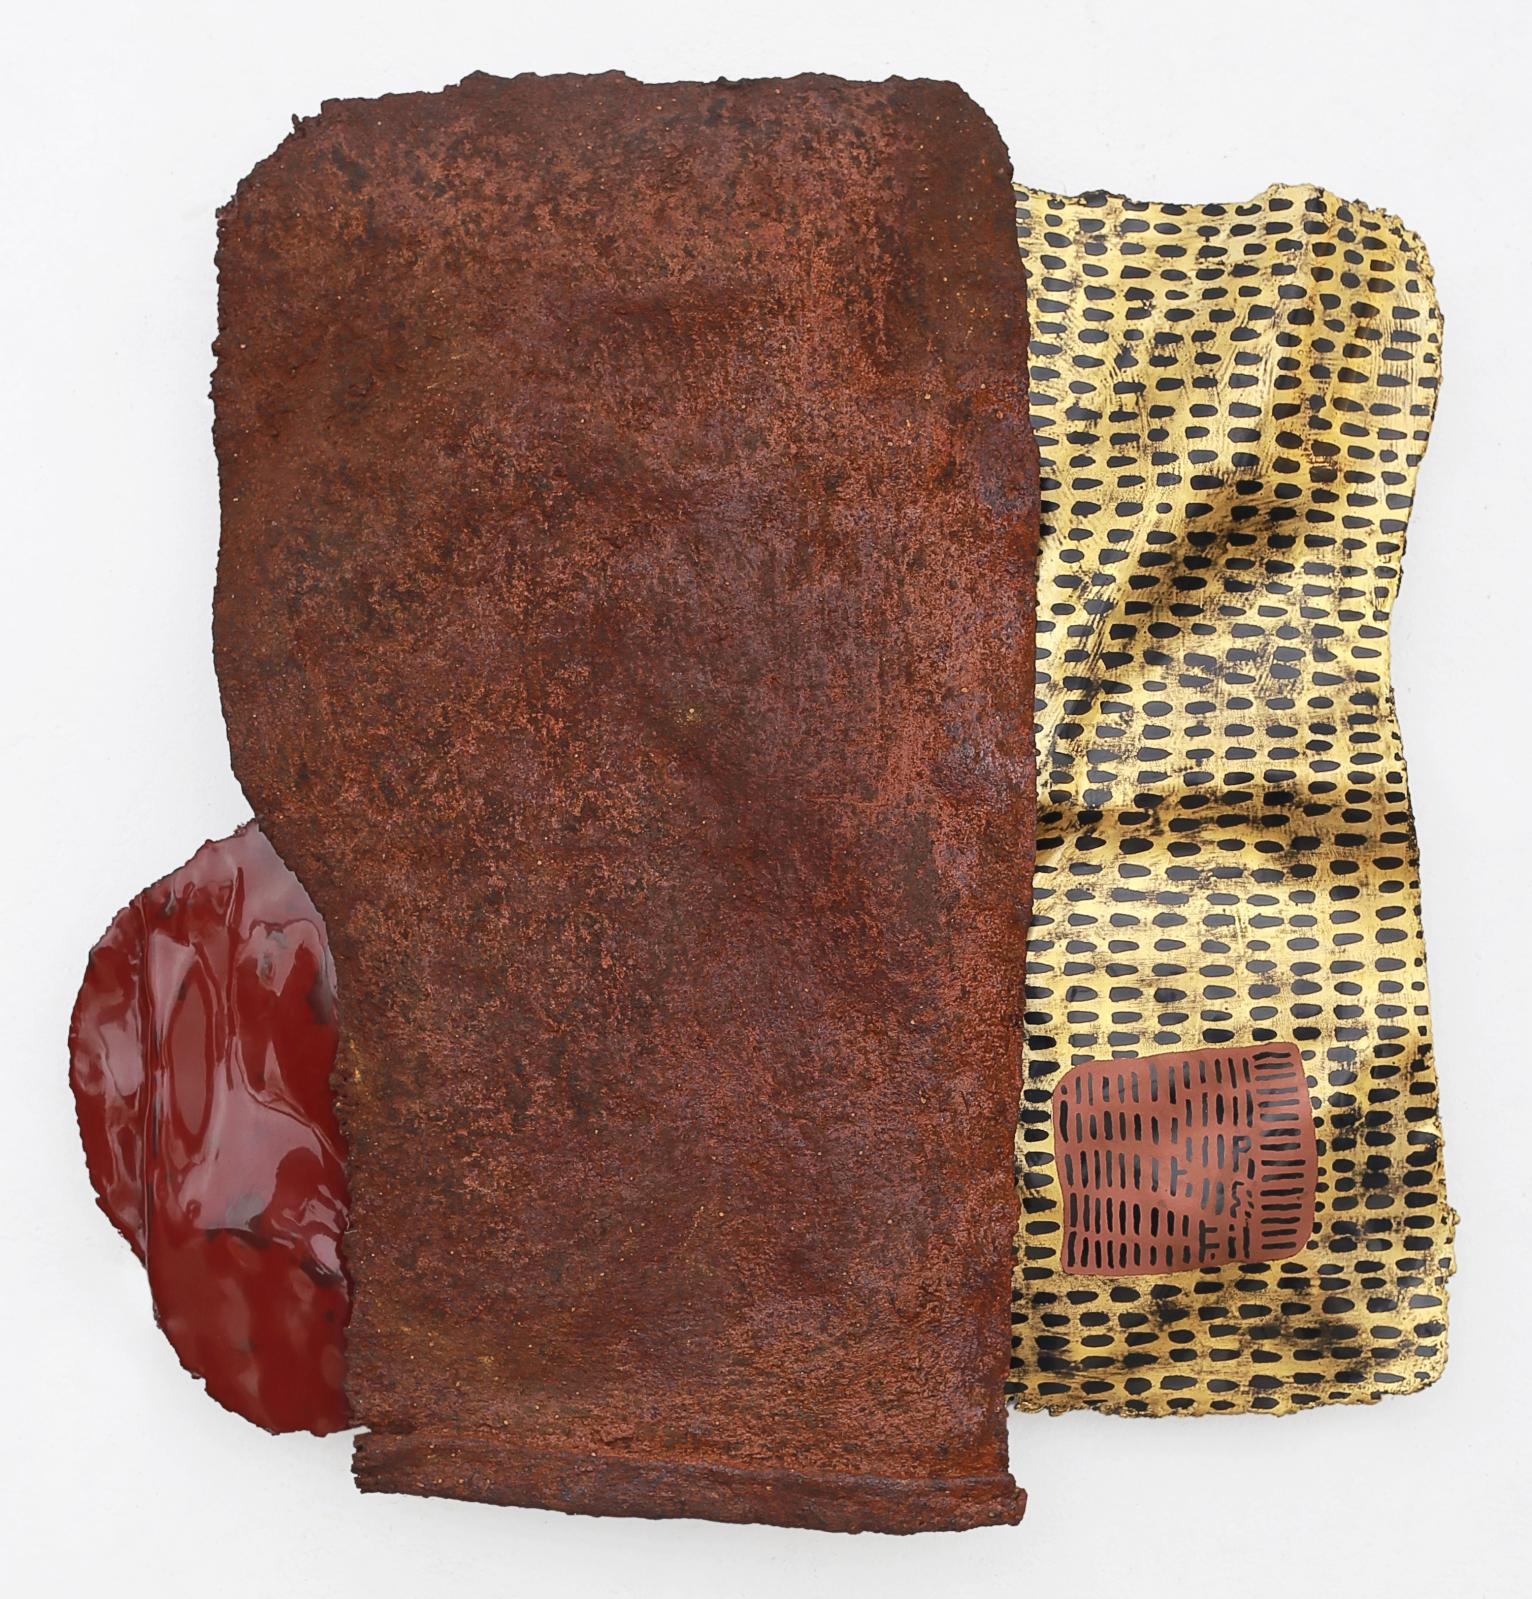 Wensen Qi (b. 1977), Untitled, 2018, Chinese lacquer on old rice bag in hessian, grasscloth, powered rusted iron, gold leaf, bronze powder, 42 x 40 cm